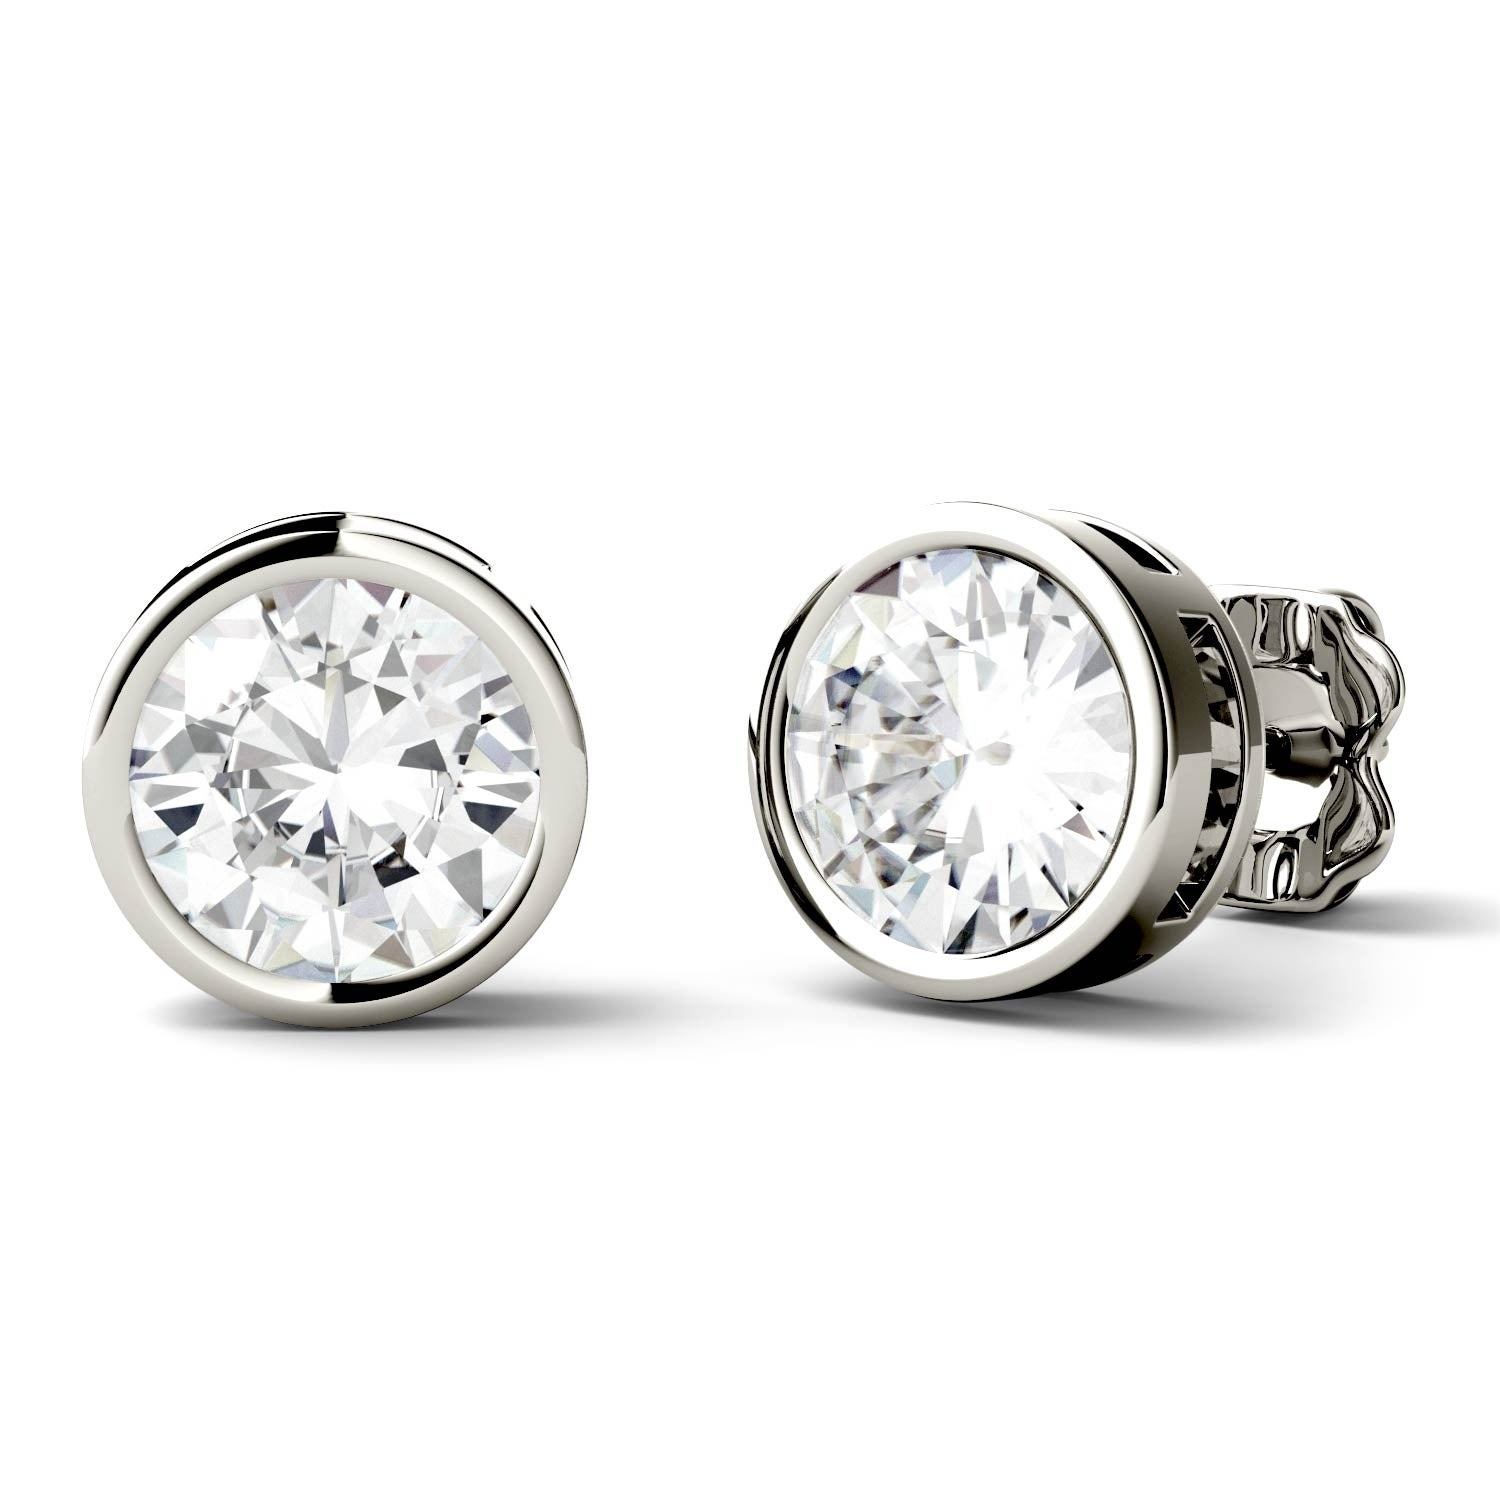 white vanrycke earrings earring king product modesens single one diamond